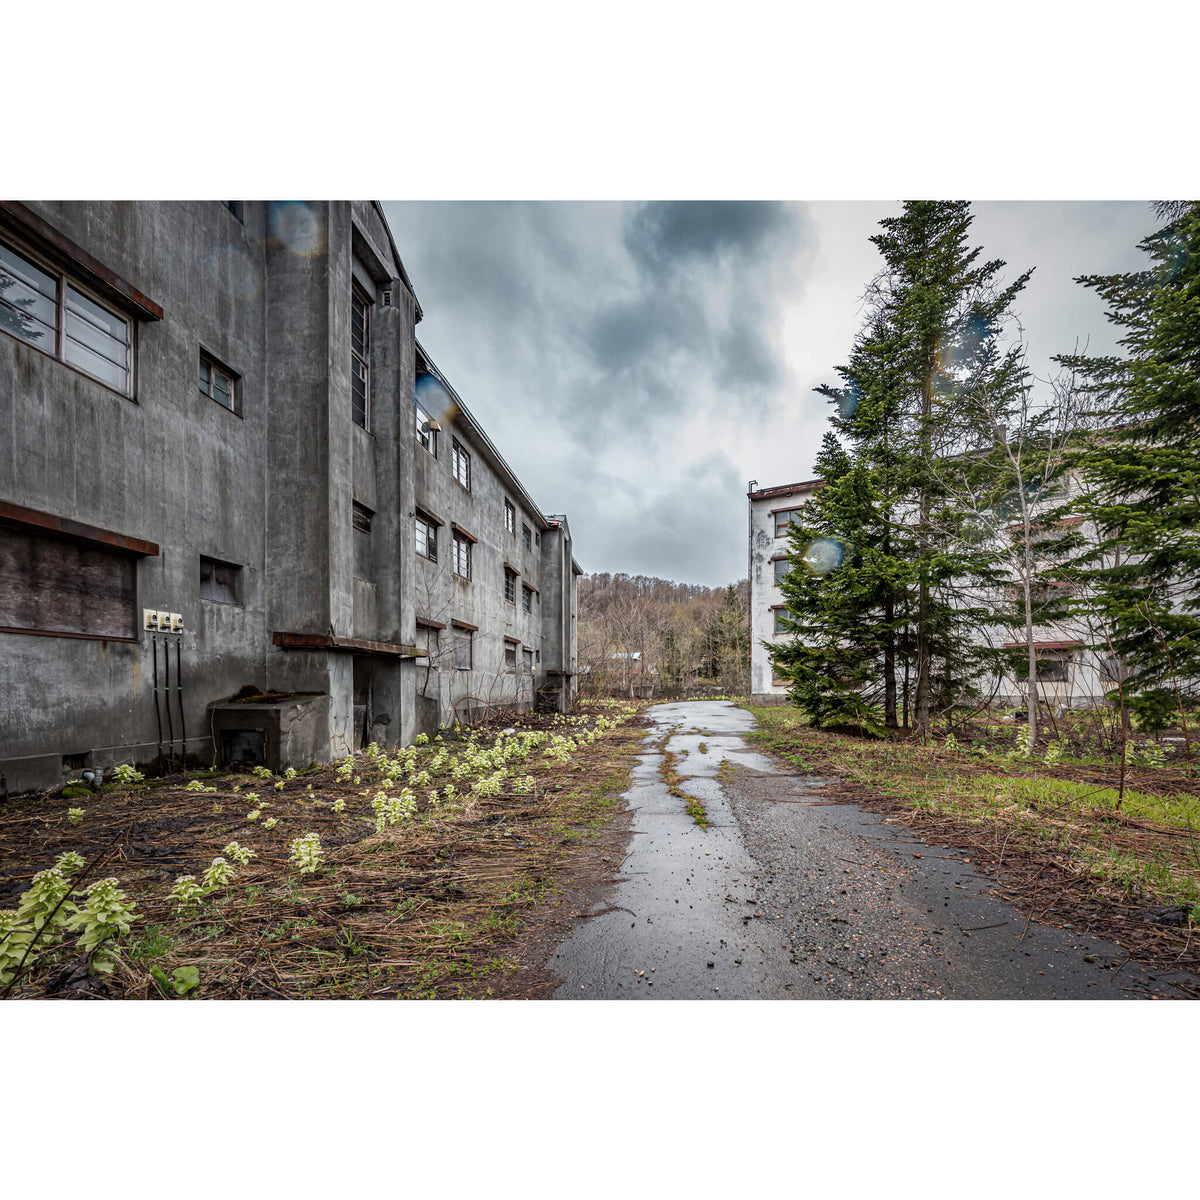 Public Housing Driveway | Streetscapes of Yubari Fine Art Print - Lost Collective Shop